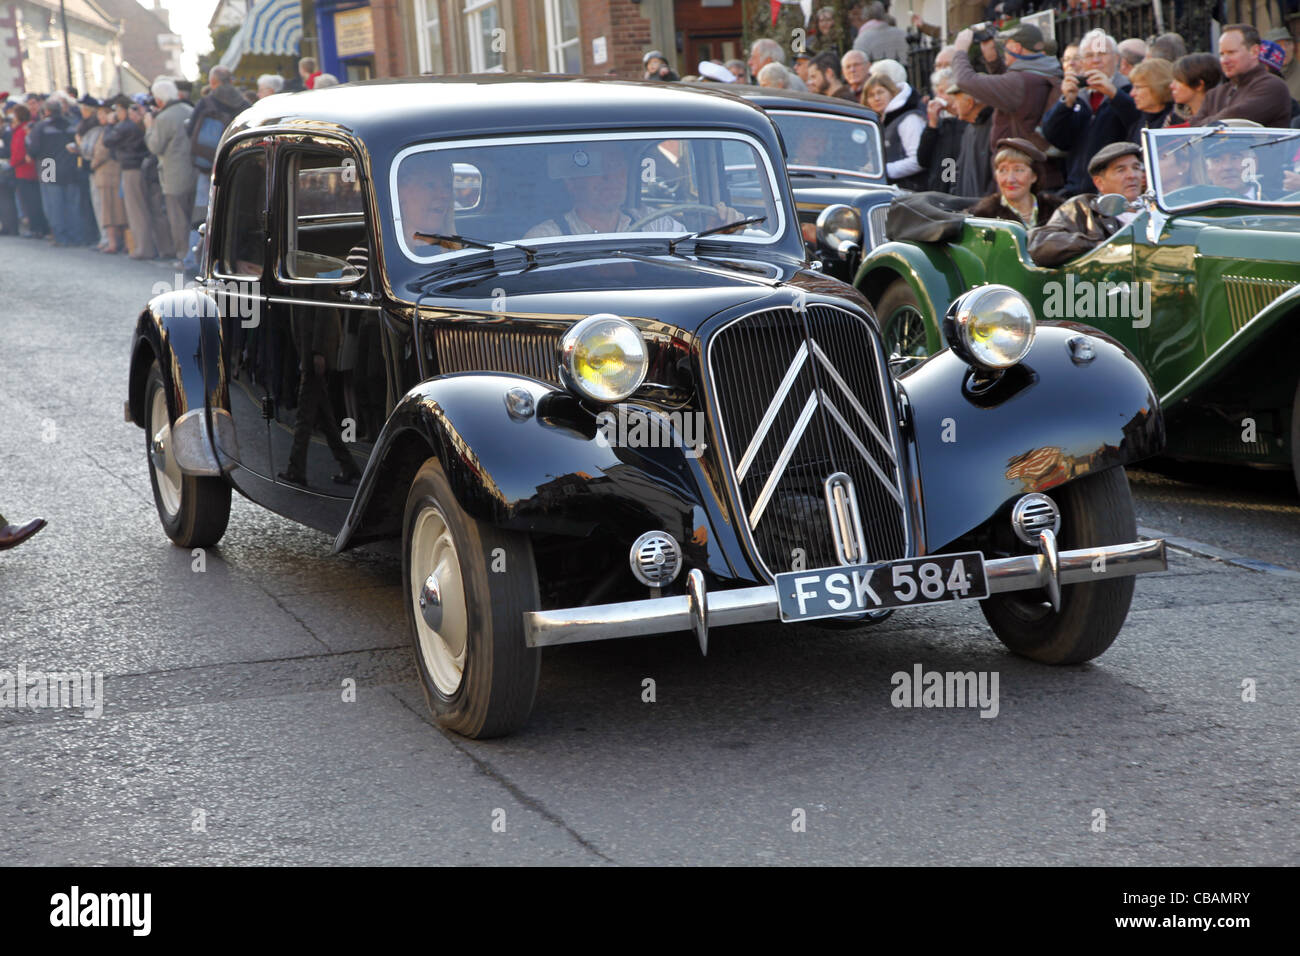 1940s car with people stock photos 1940s car with people. Black Bedroom Furniture Sets. Home Design Ideas